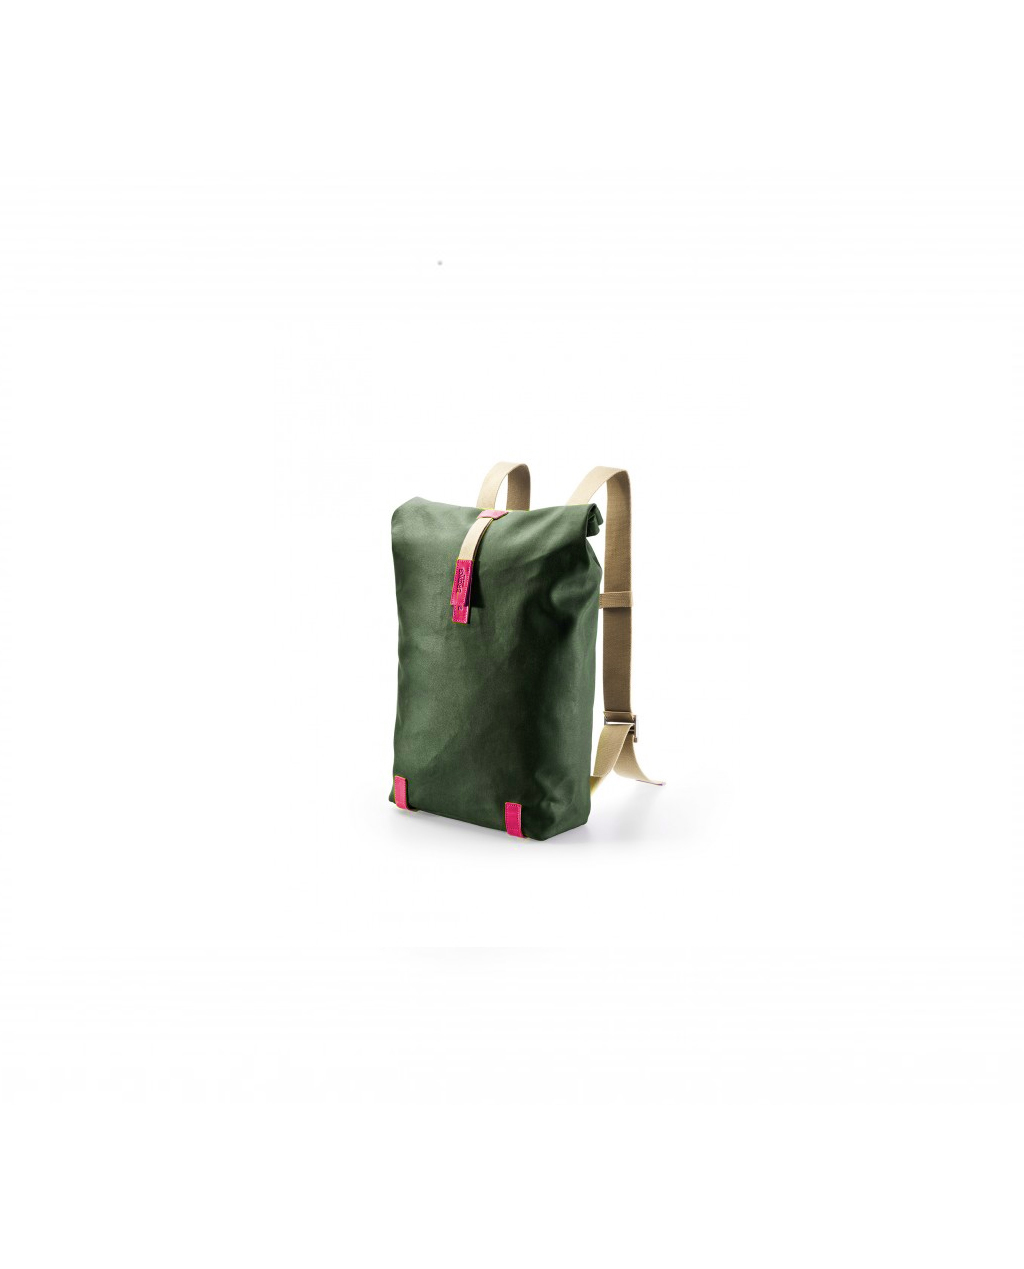 Brooks Pickwick Backpack 26LT - Basil Green/Turquoise